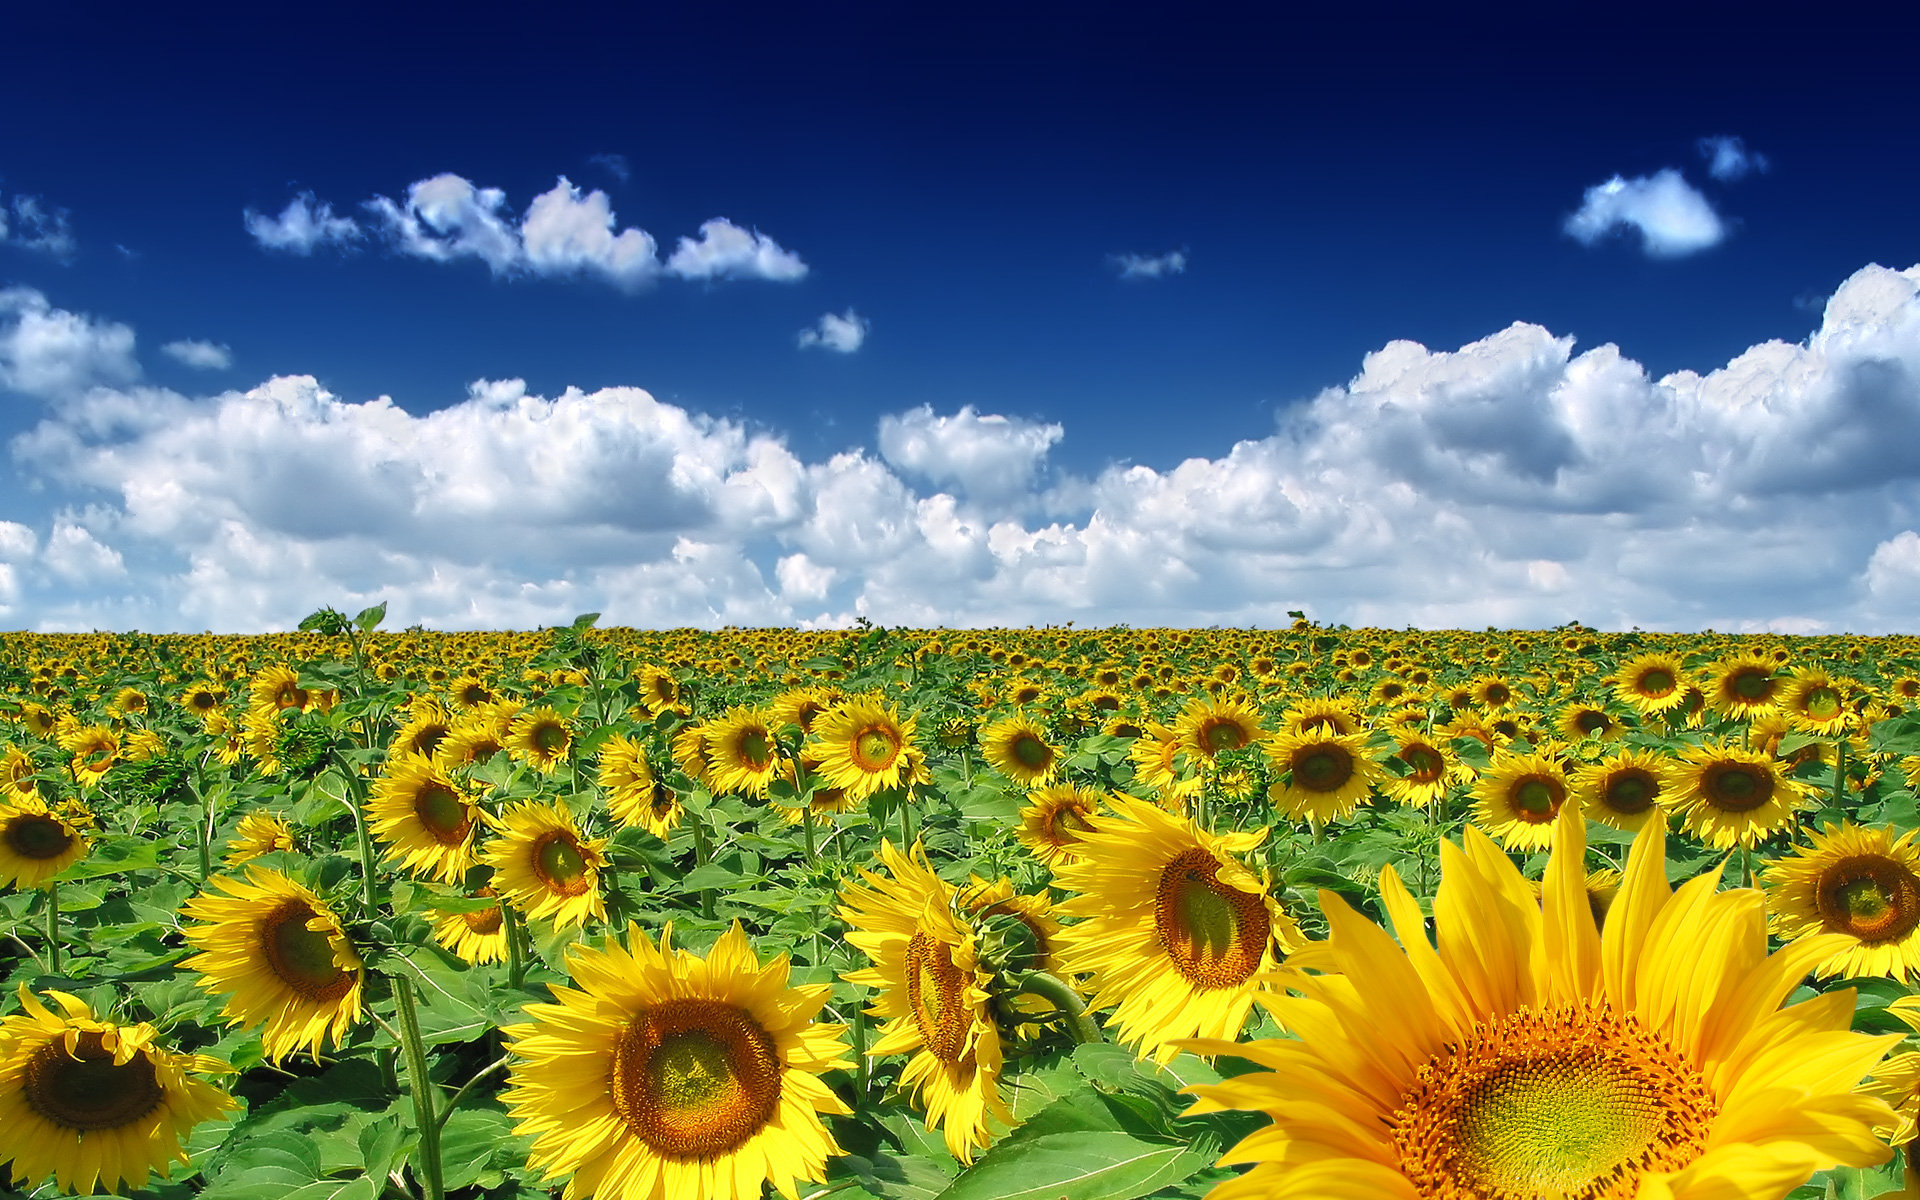 Download: Summer Sunflowers HD Wallpaper